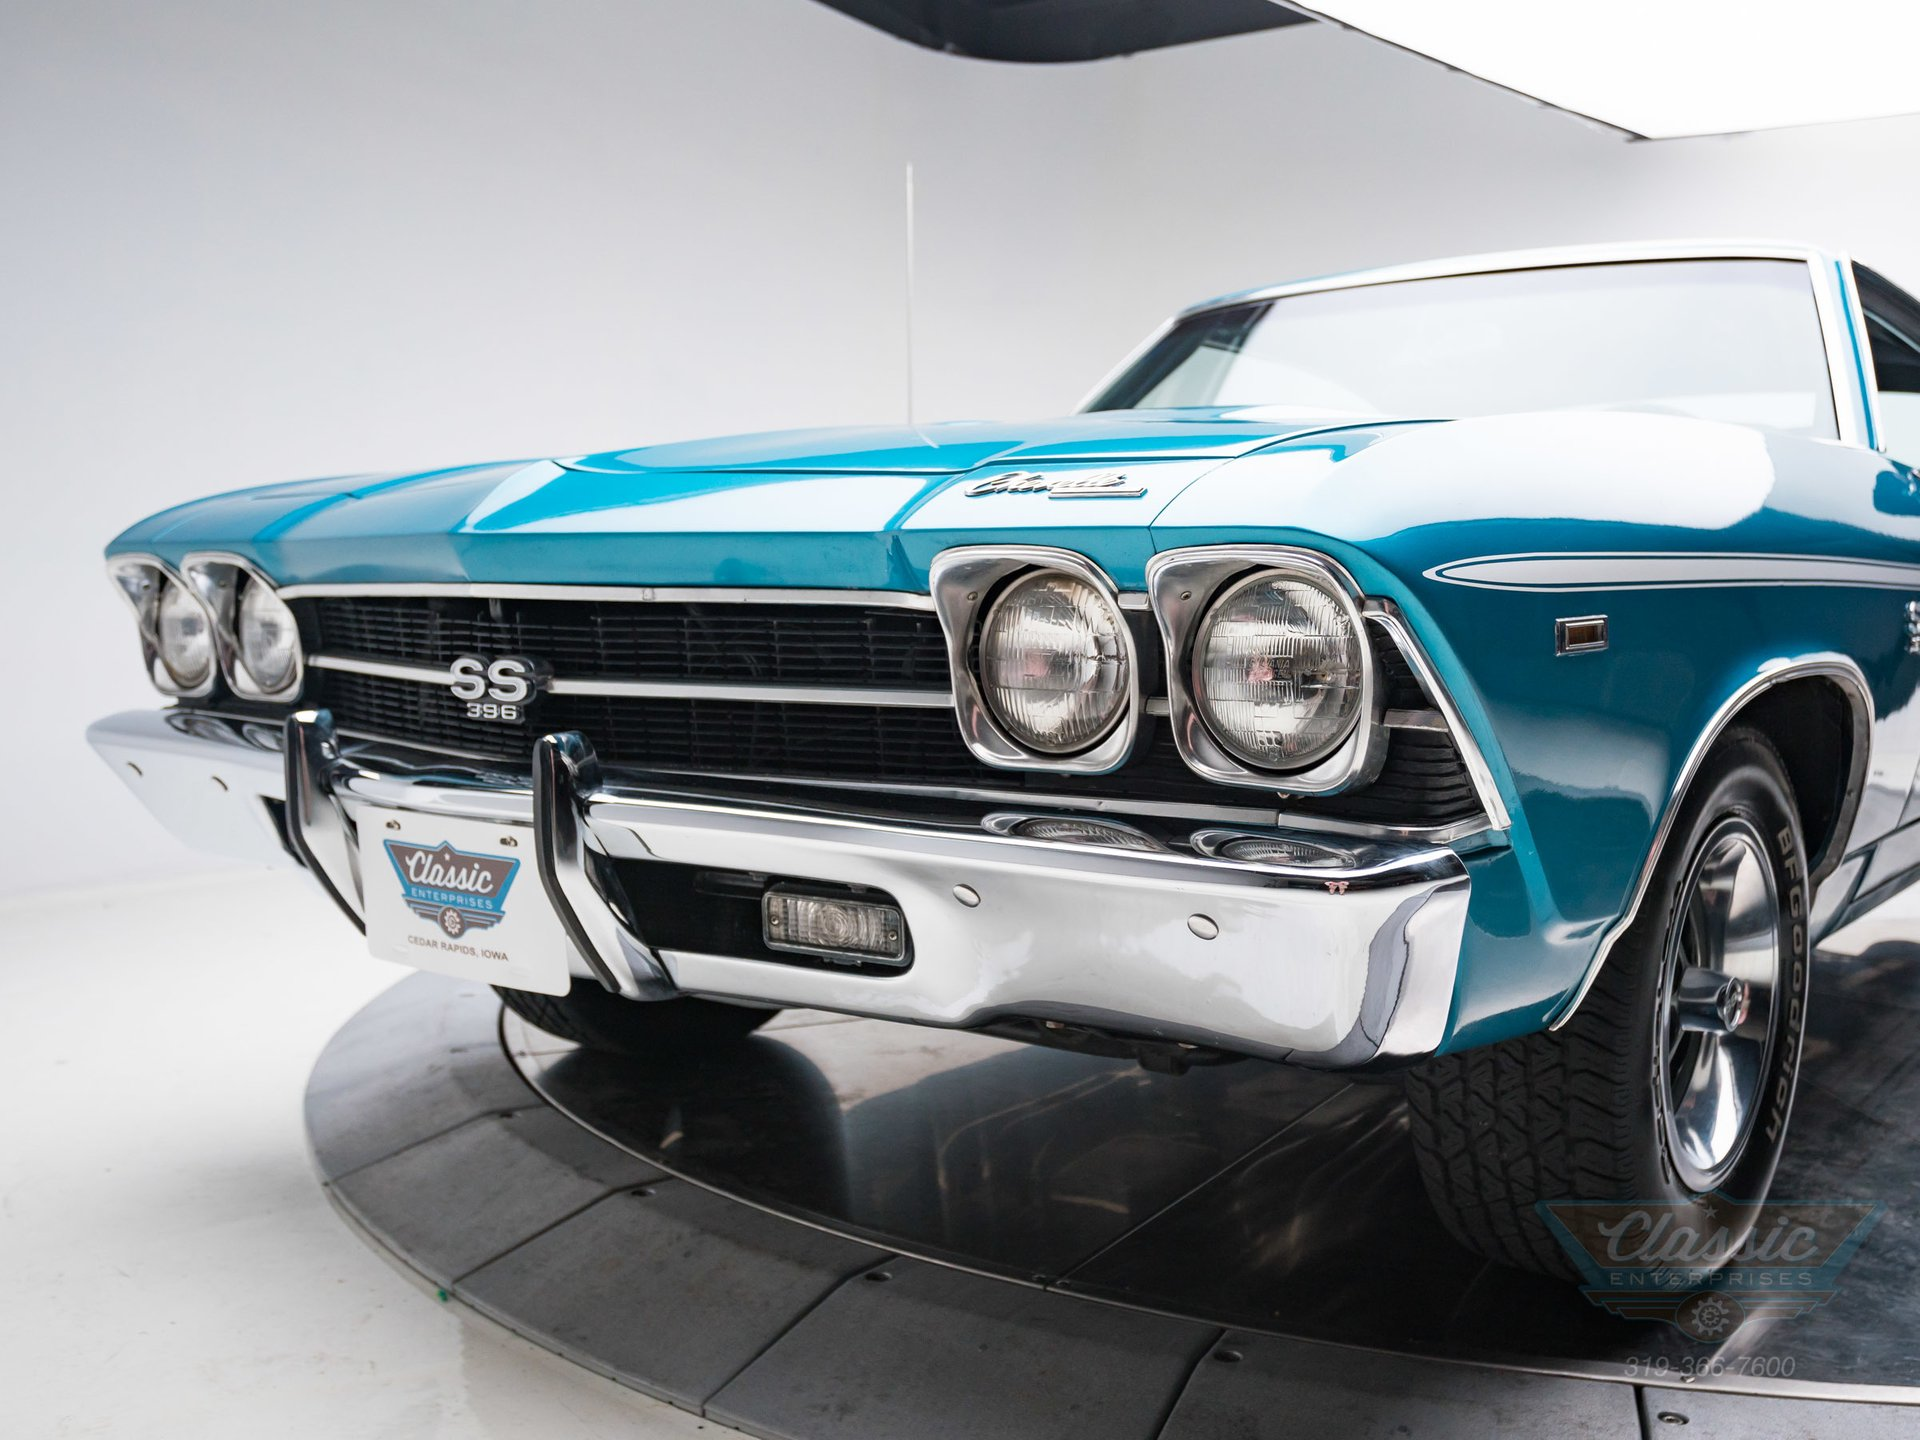 1969 Chevrolet Chevelle SS | Duffy's Classic Cars